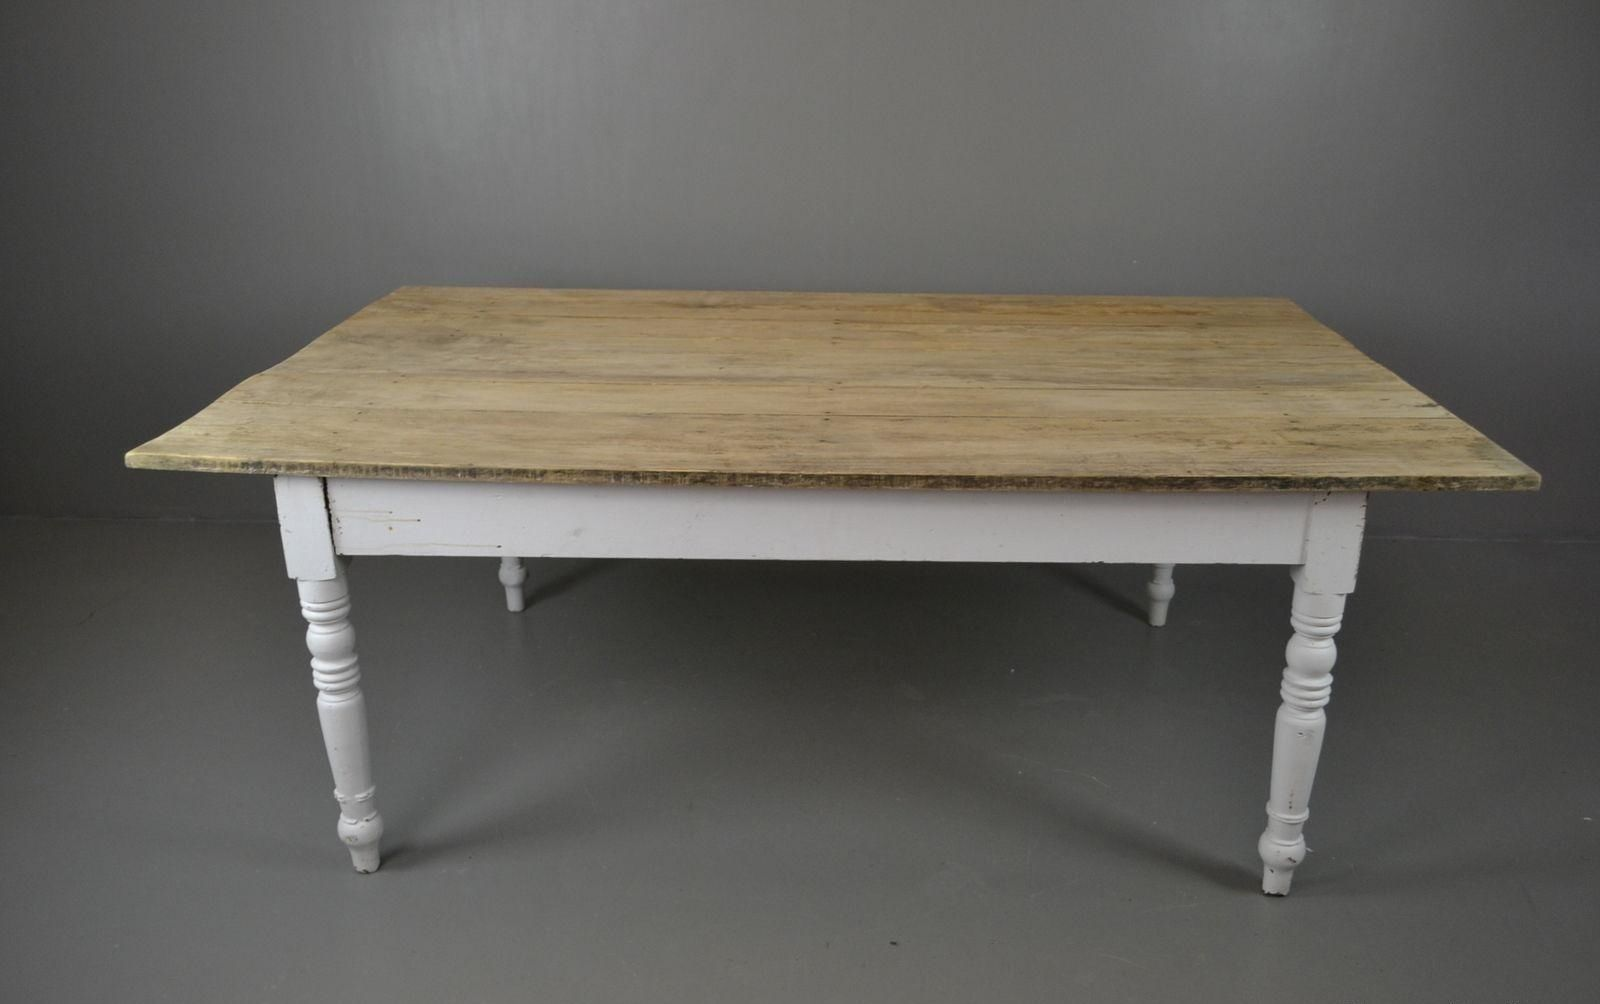 Vintage Farmhouse Dining Table for sale at Pamono : vintage farmhouse dining table 1 from www.pamono.co.uk size 1600 x 1004 jpeg 77kB